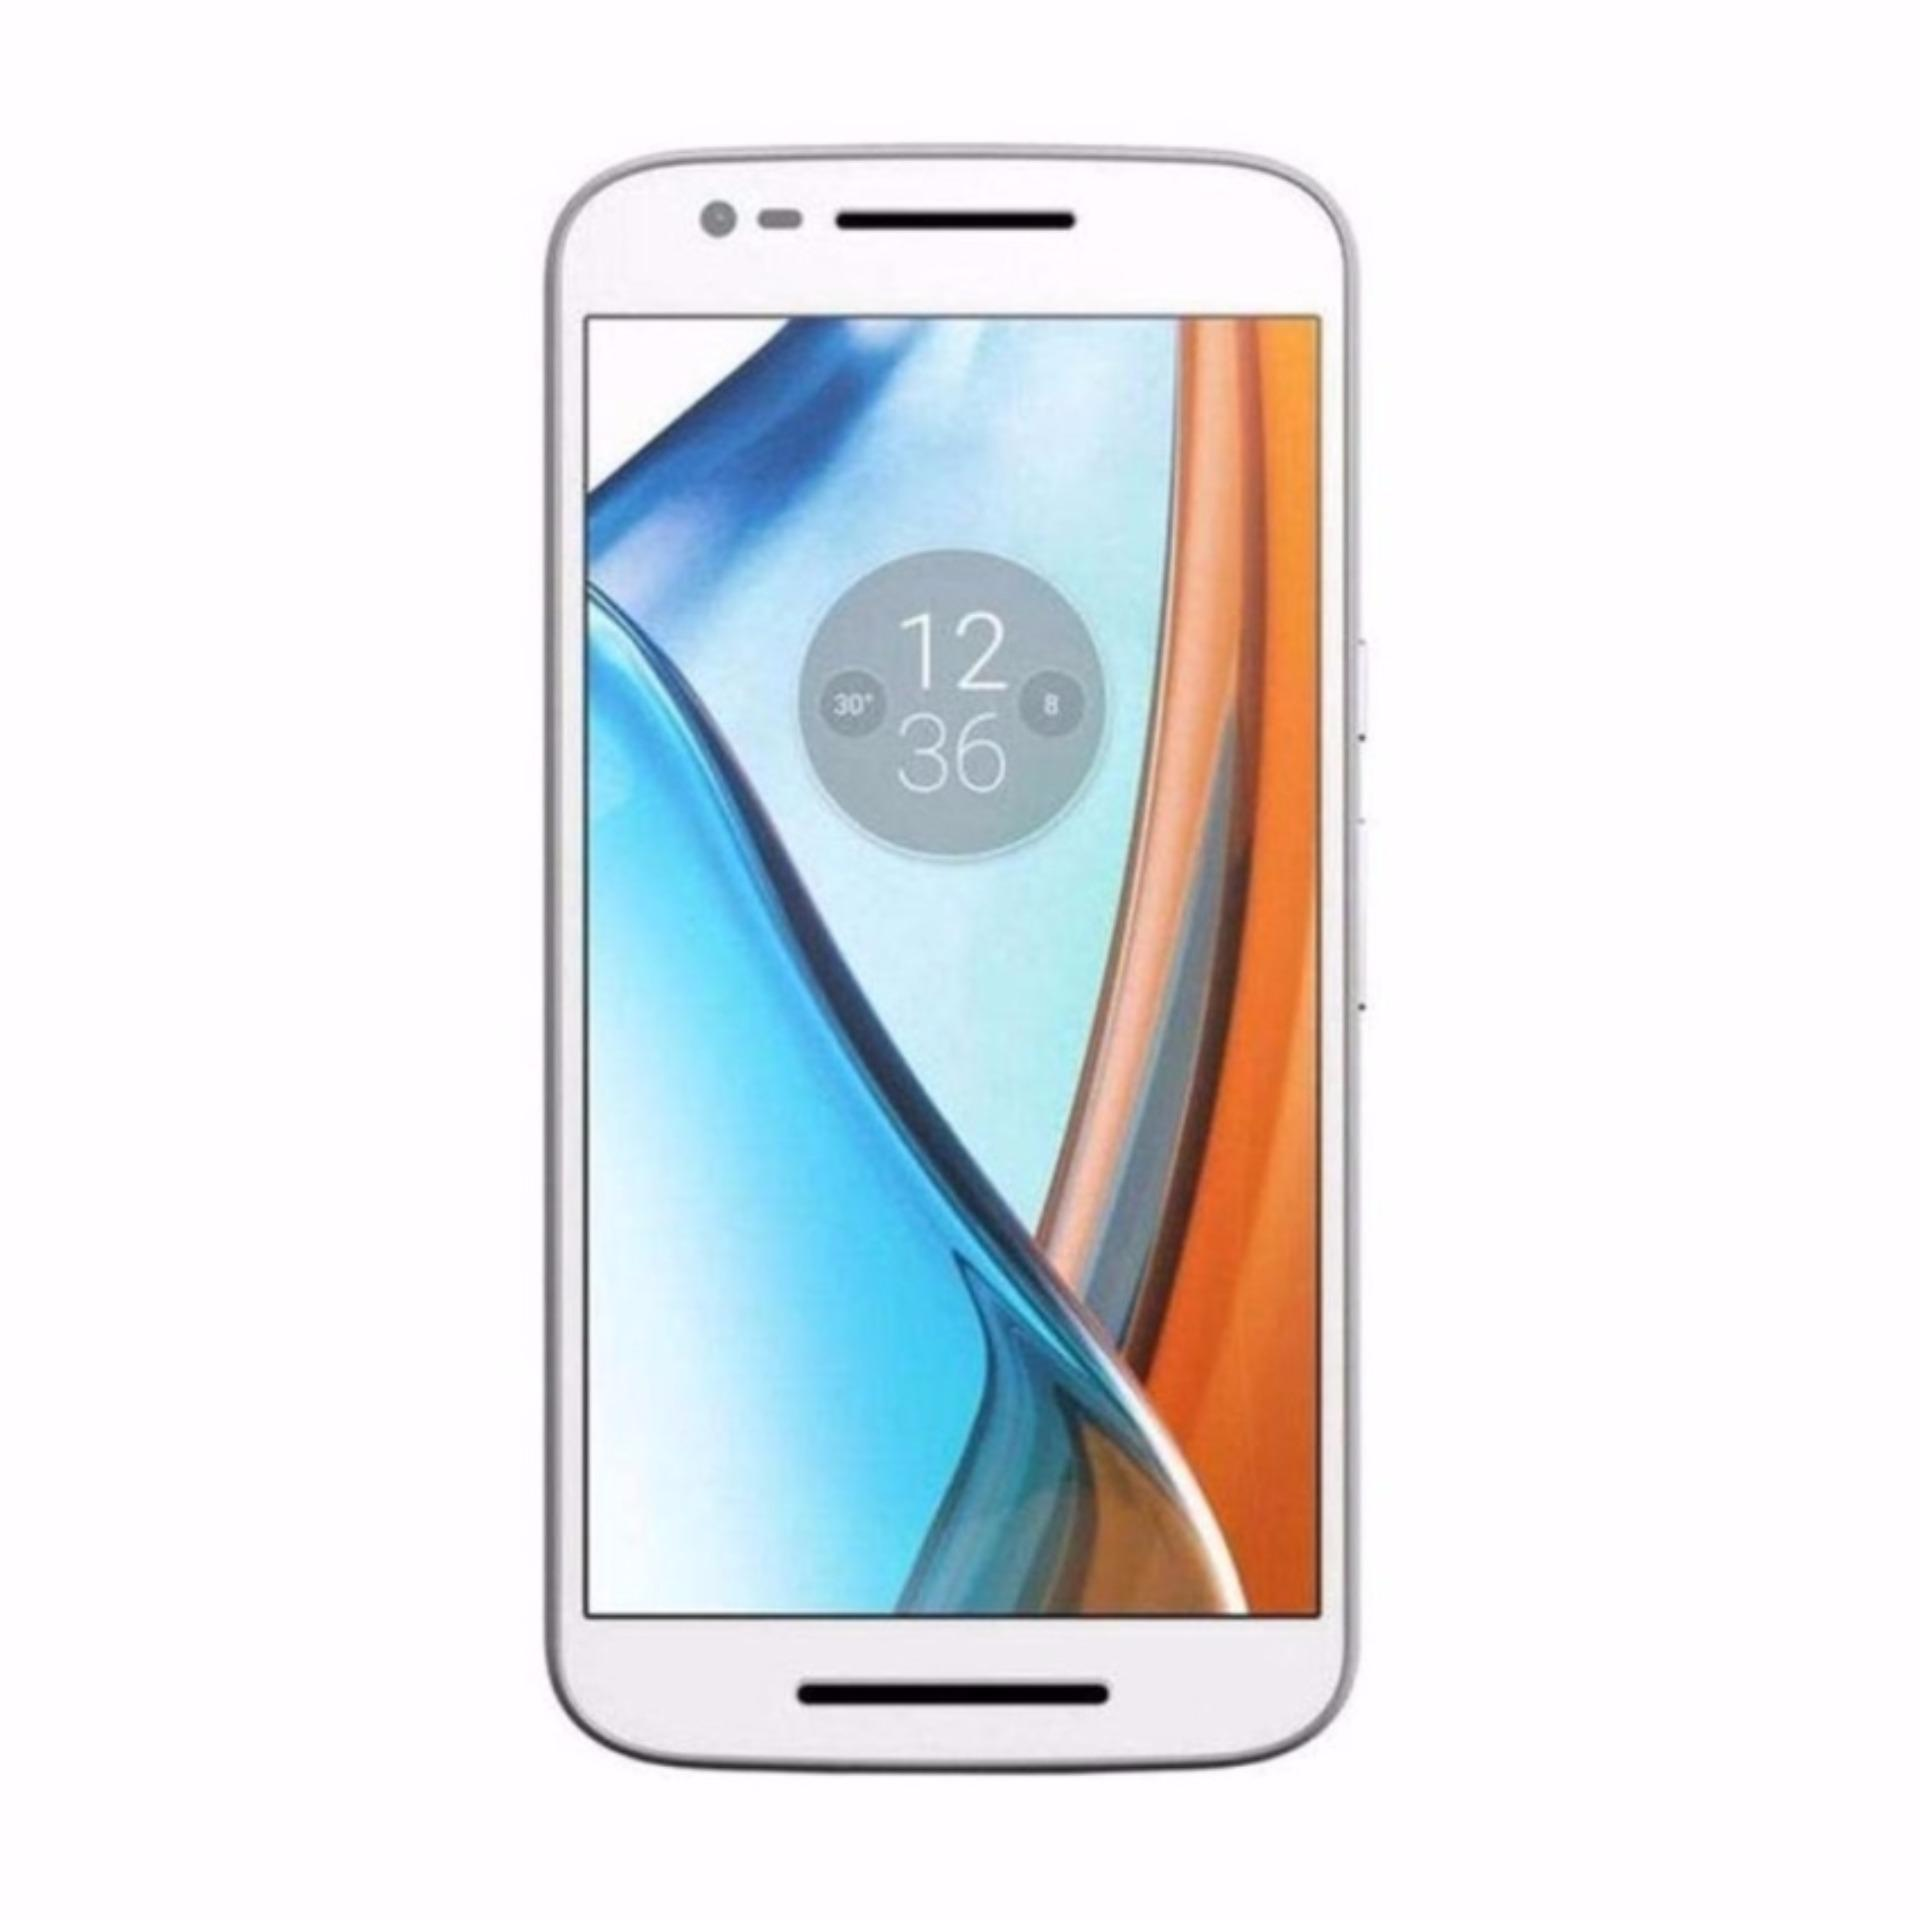 ... Moto E3 Power XT1706 - 16GB - Putih ...